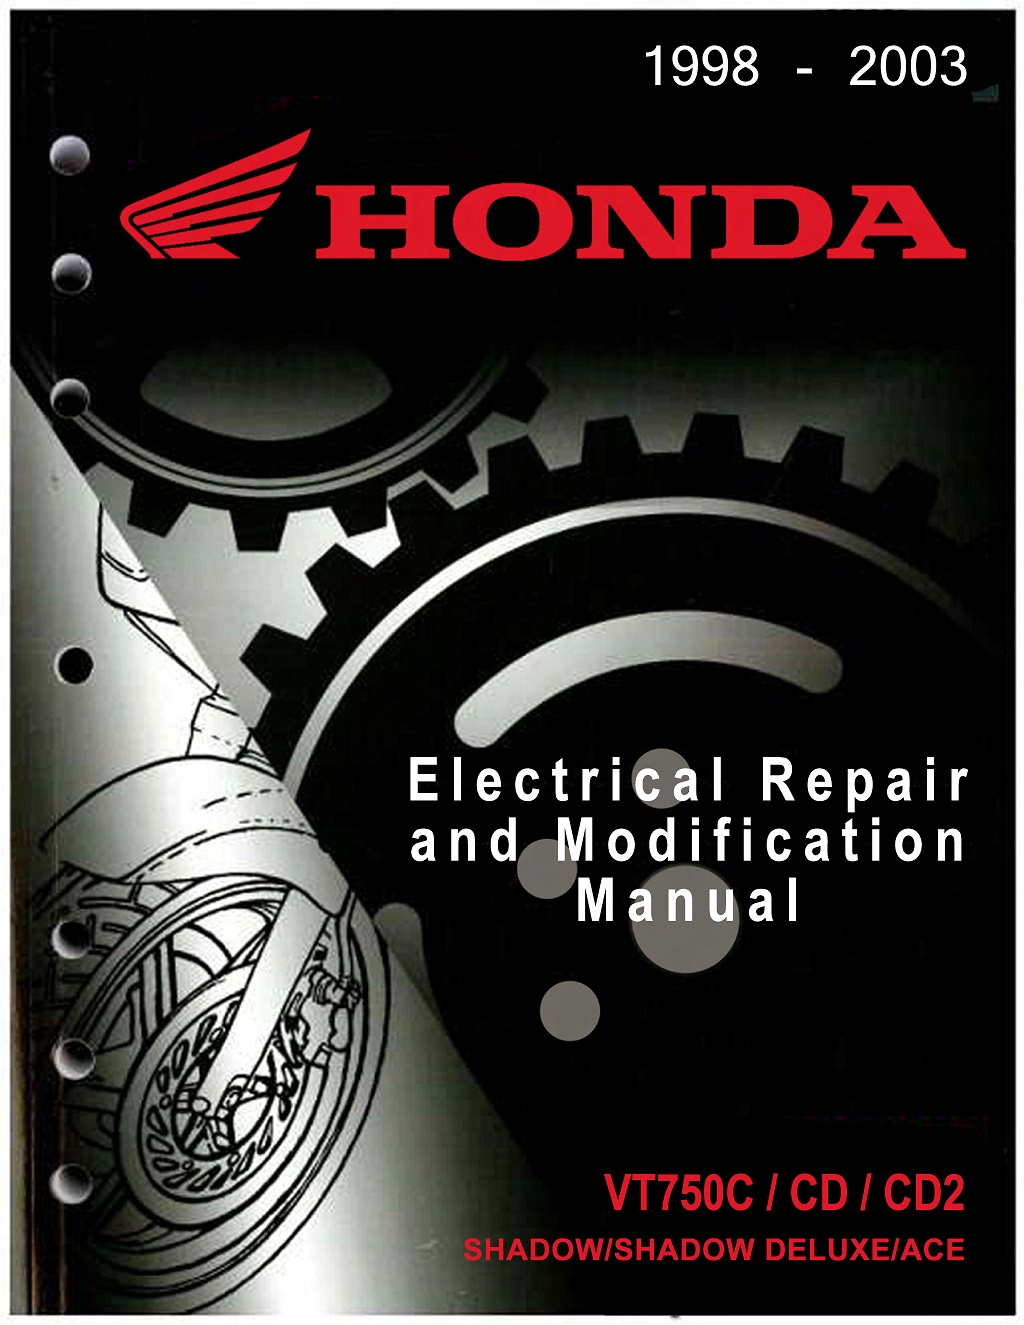 Workshop Manual for Honda VT750CD2 (1998-2003) Electrial Repair and Modification Manual